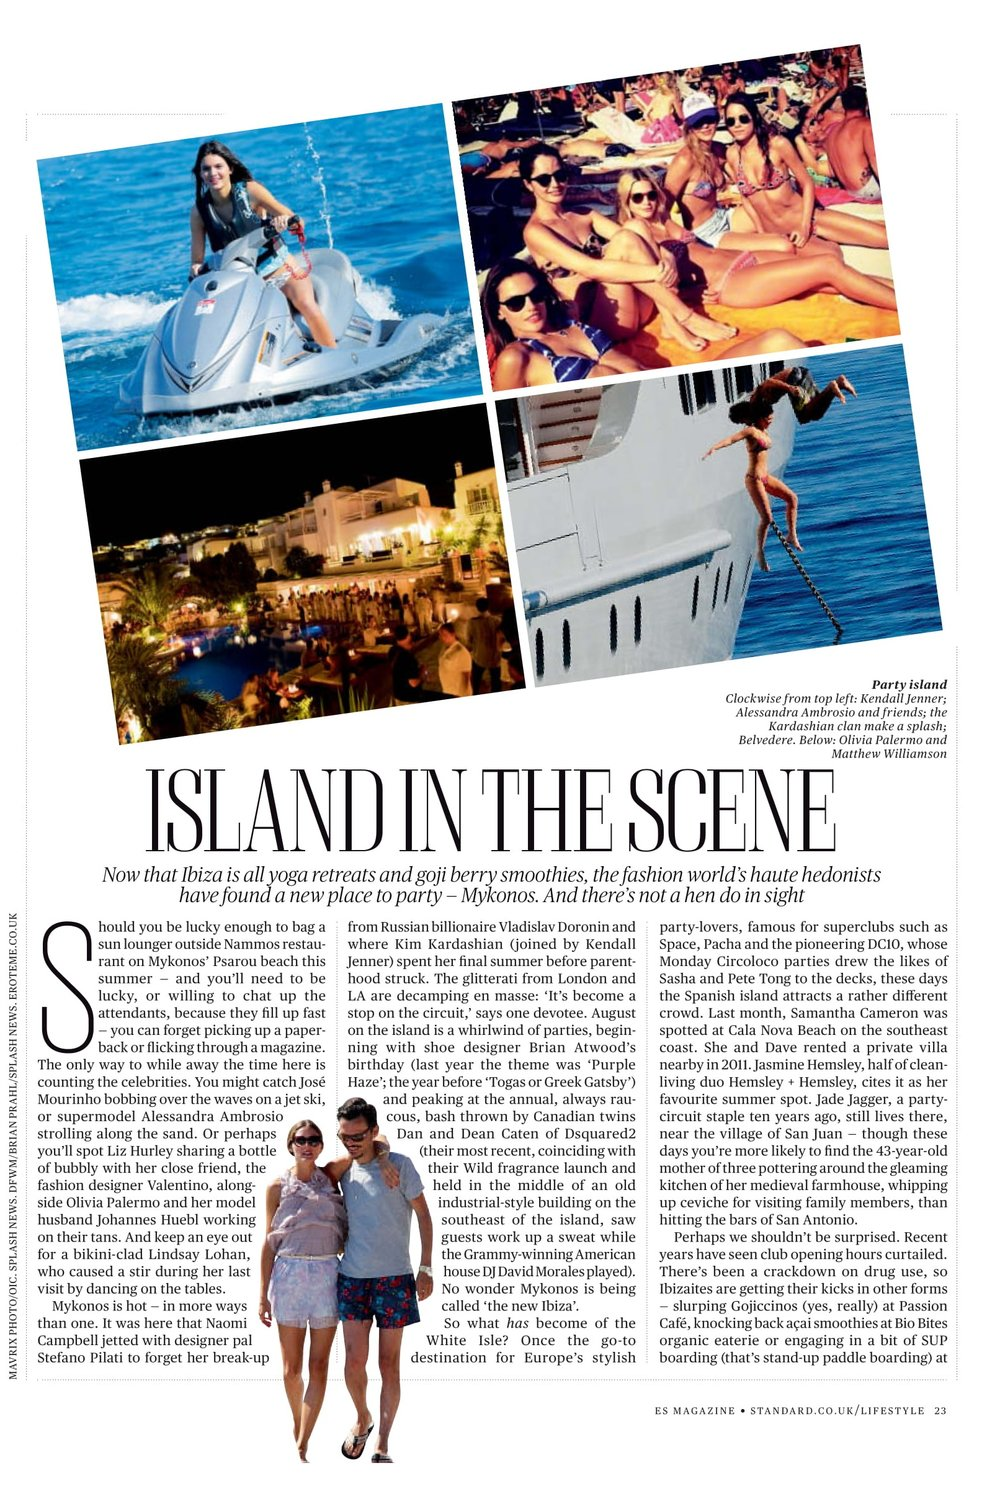 Island in the scene - Should you be lucky enough to bag a sun lounger outside Nammos restaurant on Mykonos' Psarou beach this summer — and you'll need to be lucky, or willing to chat up the attendants, because they fill up fast — you can forget picking up a paperback or flicking through a magazine. The only way to while away the time here is counting the celebrities.You might catch José Mourinho bobbing over the waves on a jet ski, or supermodel Alessandra Ambrosio strolling along the sand. Or perhaps you'll spot Liz Hurley sharing a bottle of bubbly with her close friend, the fashion designer Valentino… READ MORE